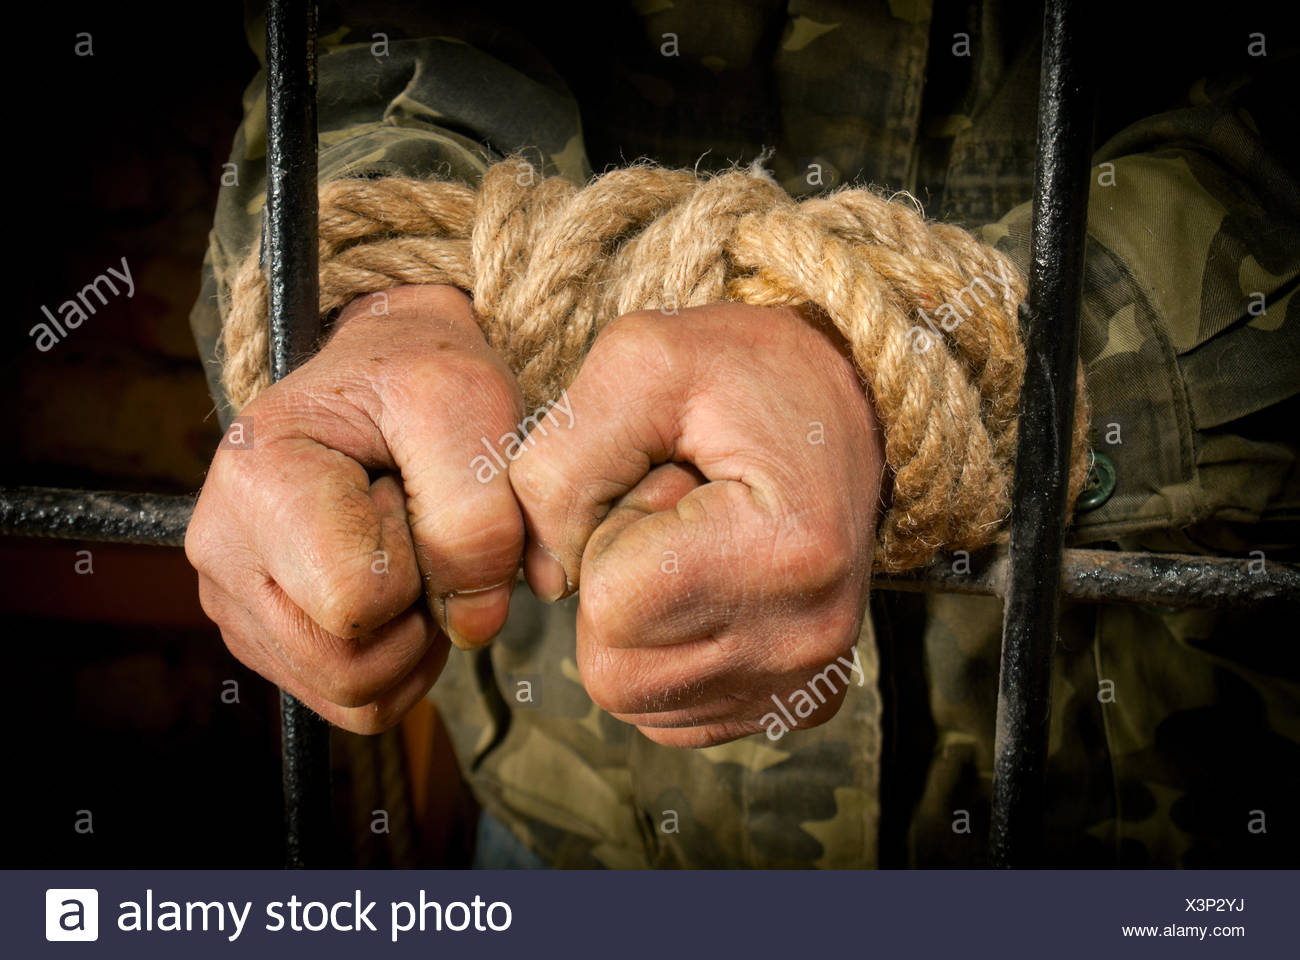 Man with hands tied up with rope behind the bars - Stock Image